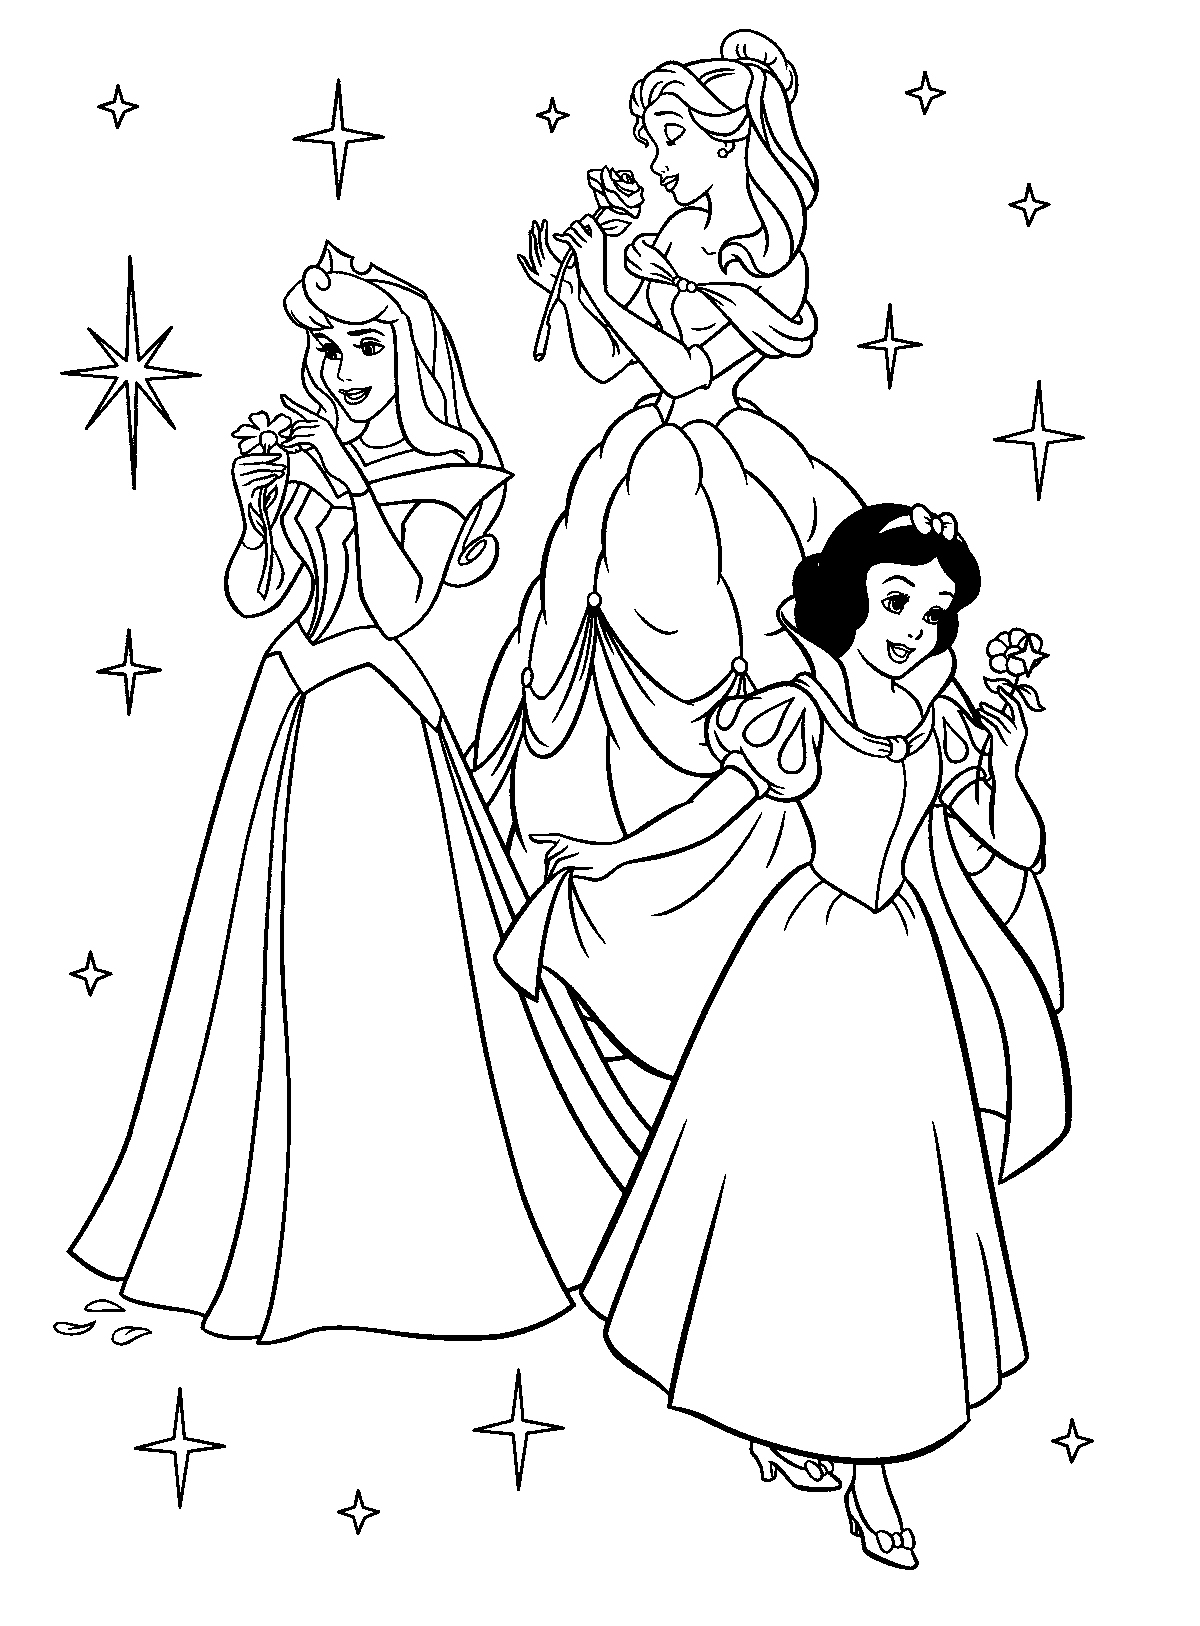 Coloring_Pages_Disney_Princesses_08